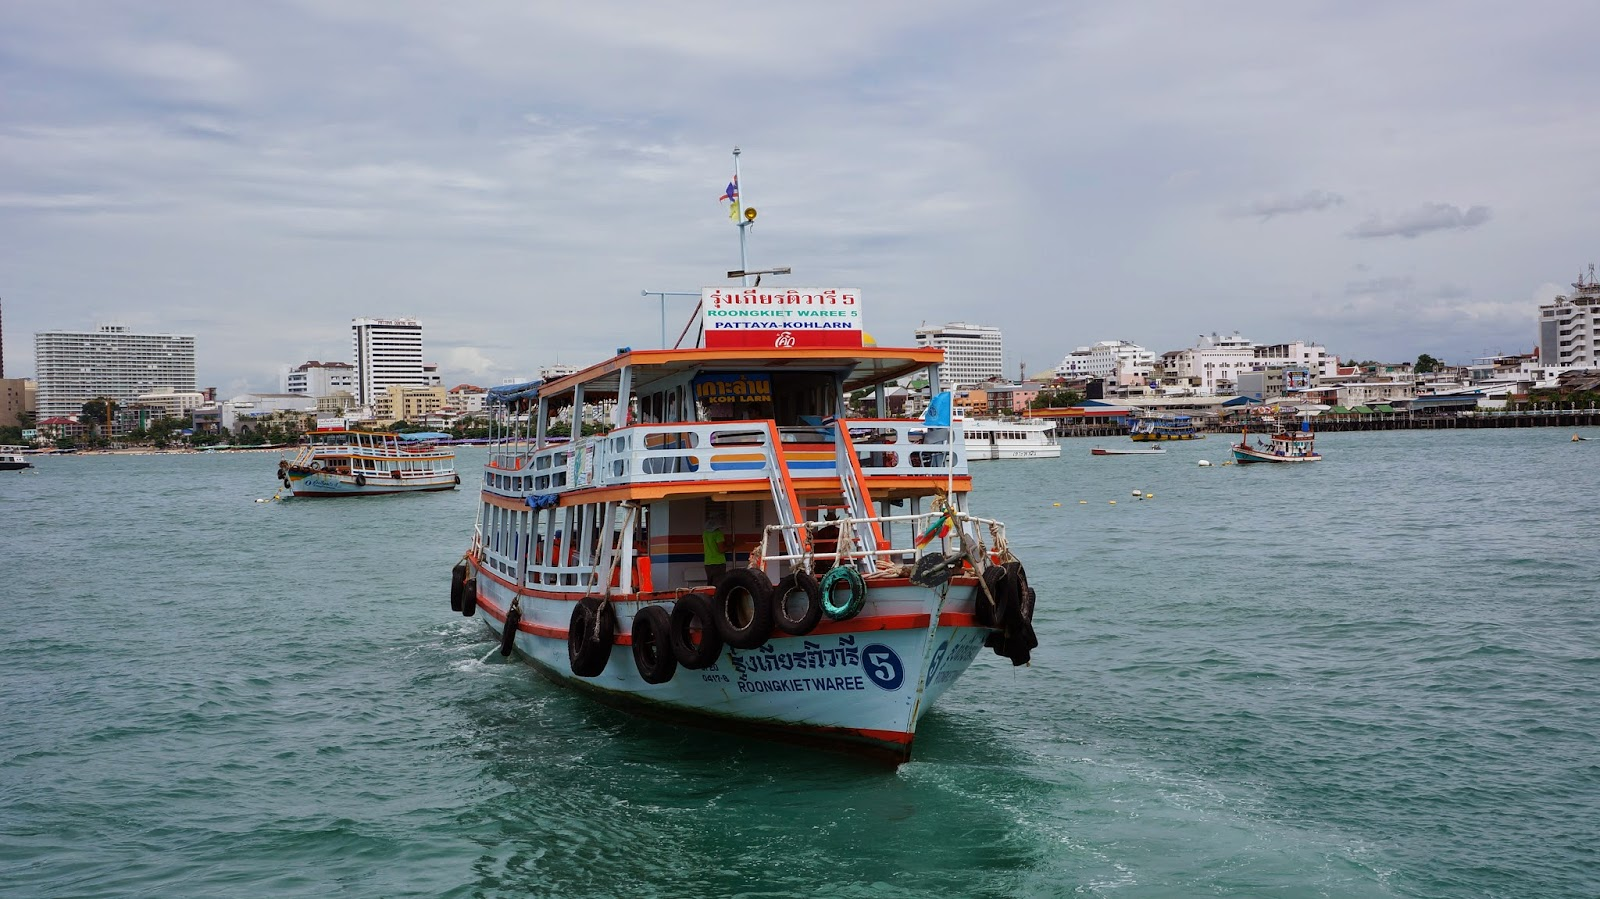 Taking the ferry to Koh Larn island, just 45 minutes away from Pattaya